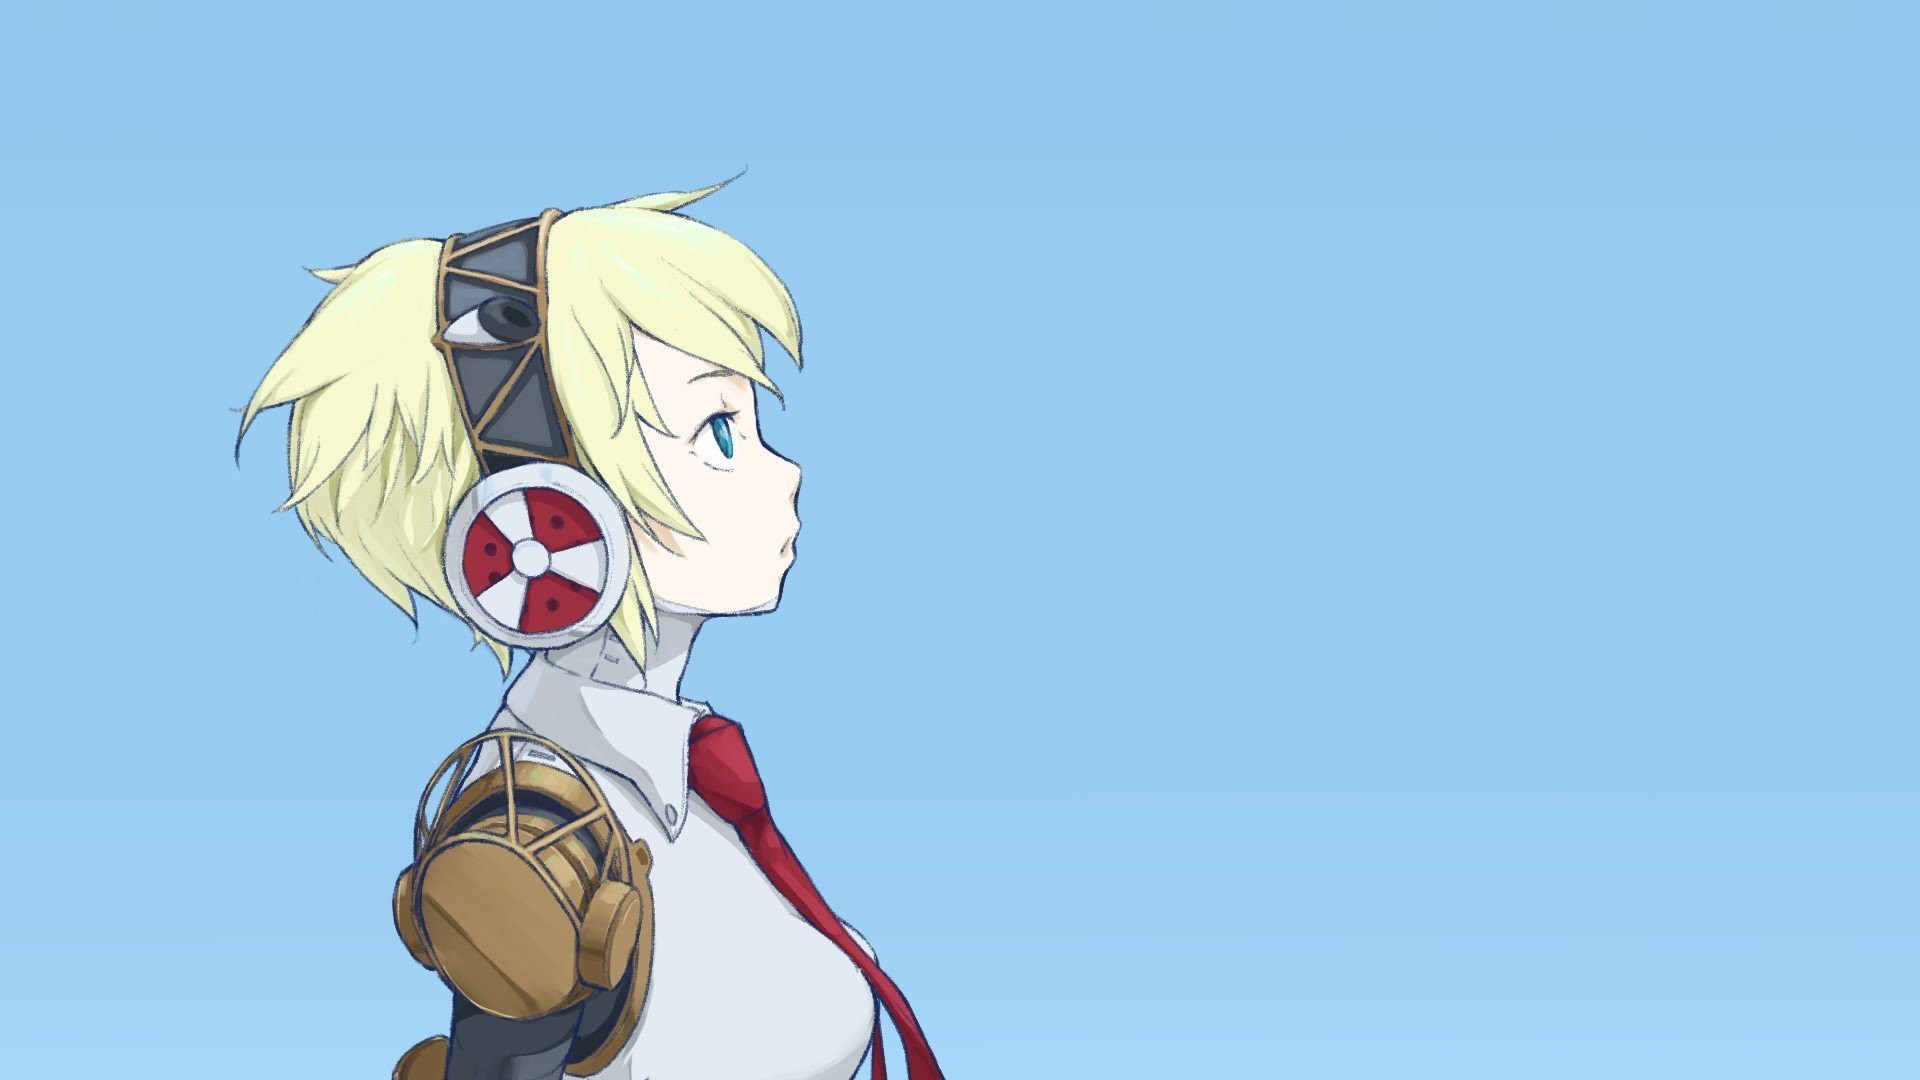 Res: 1920x1080, Persona 3 Fes Images HD